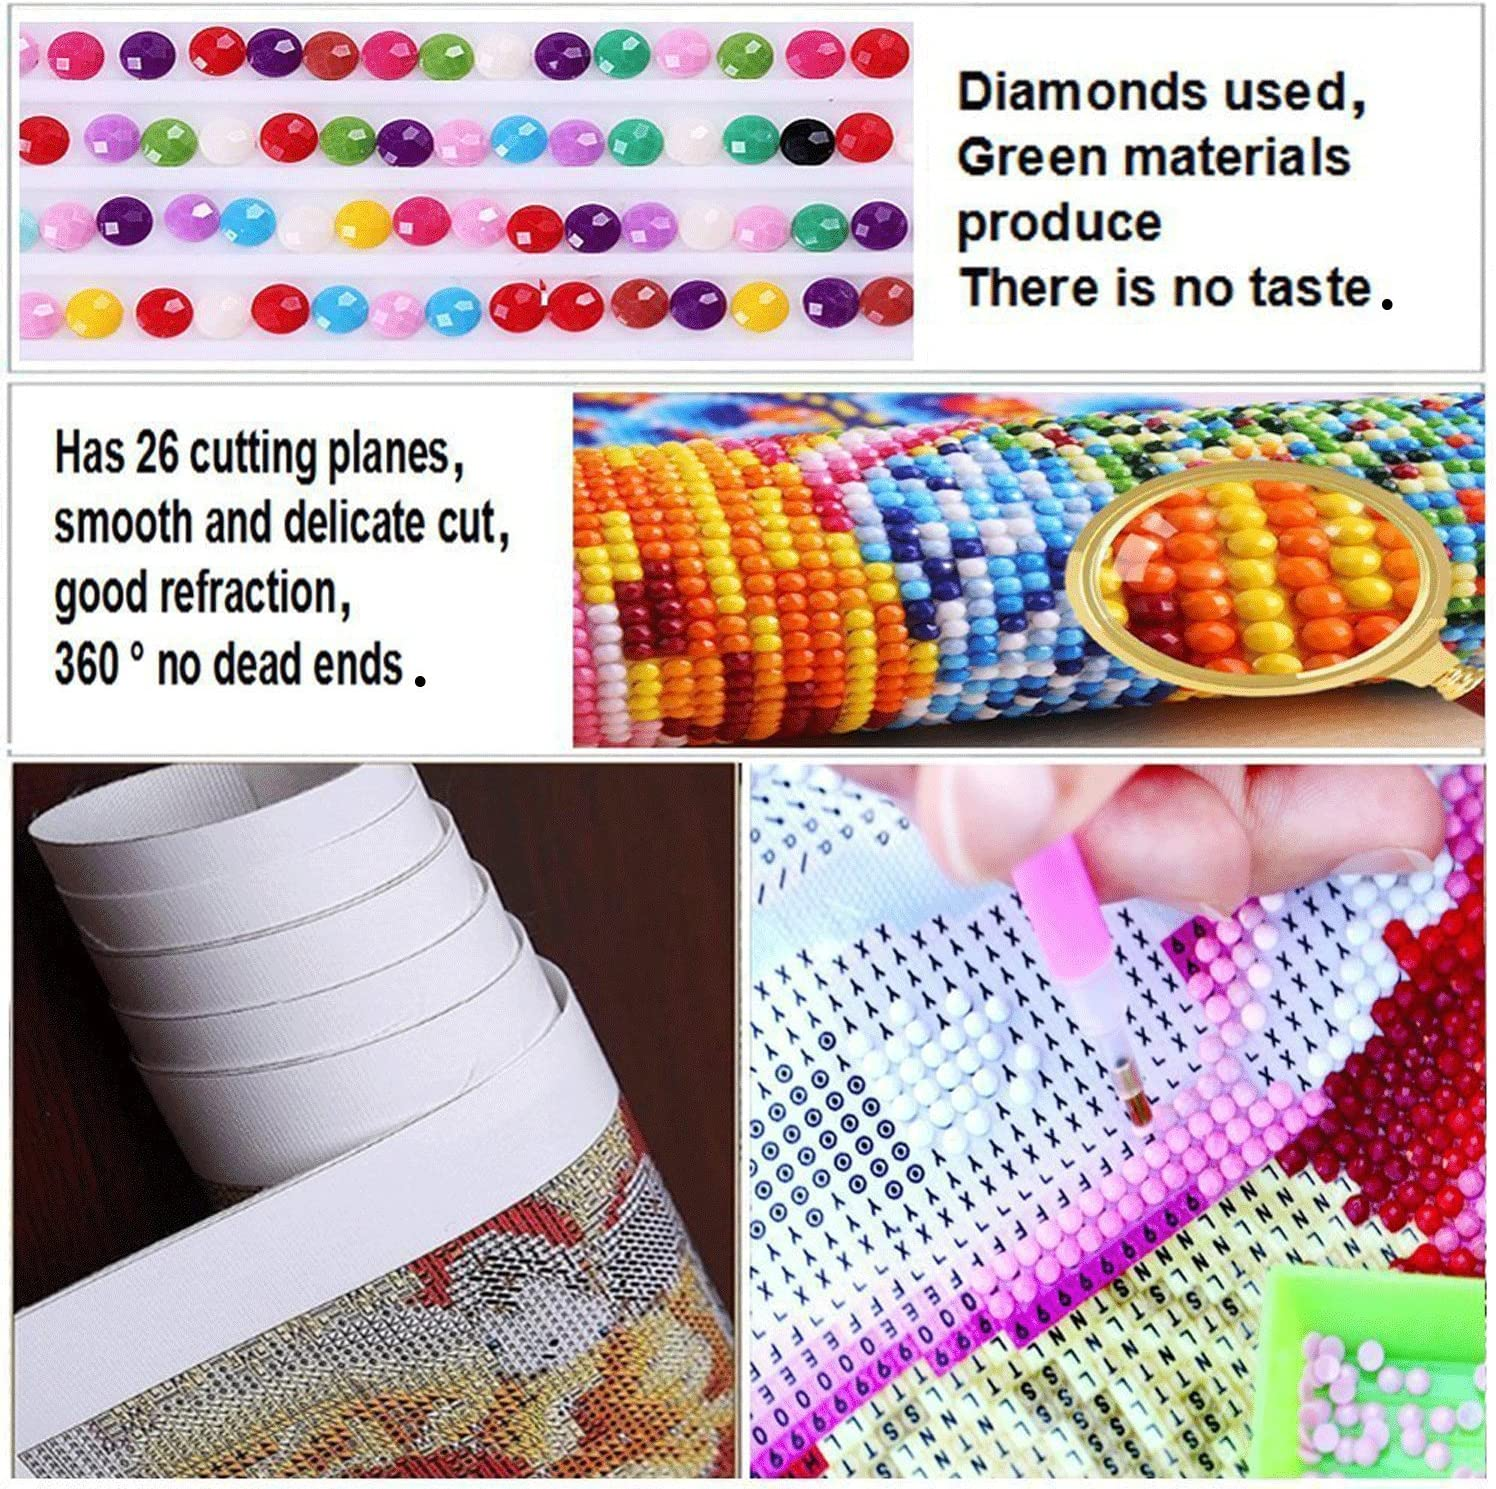 LX-100XFQS-15.7x11.8in DIY 5D Diamond Painting by Number Kits Painting Cross Stitch Full Drill Crystal Rhinestone Embroidery Pictures Arts Craft for Home Wall Decor Gift